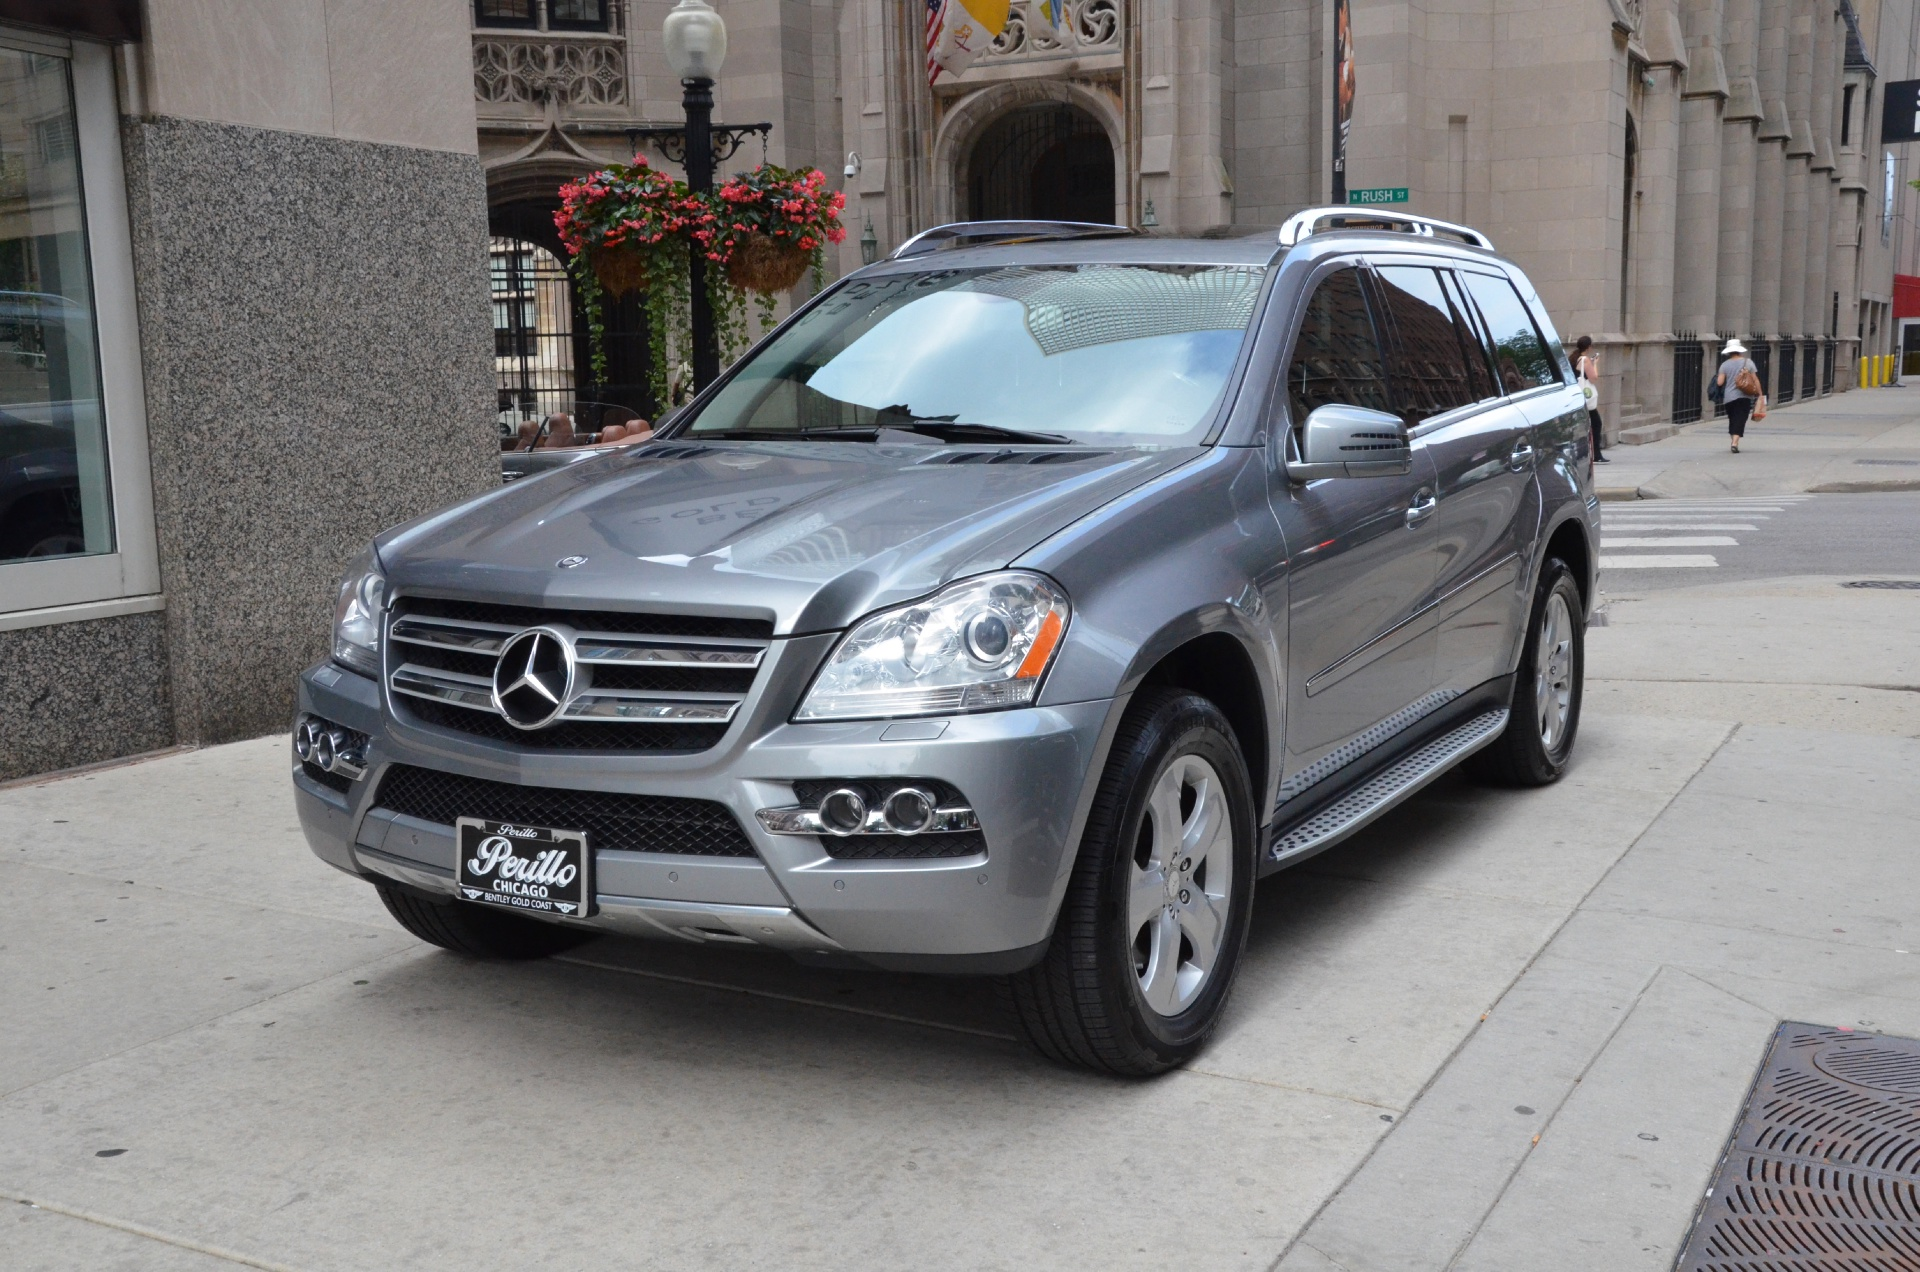 2011 mercedes benz gl class gl450 used bentley used for 2011 mercedes benz gl class gl450